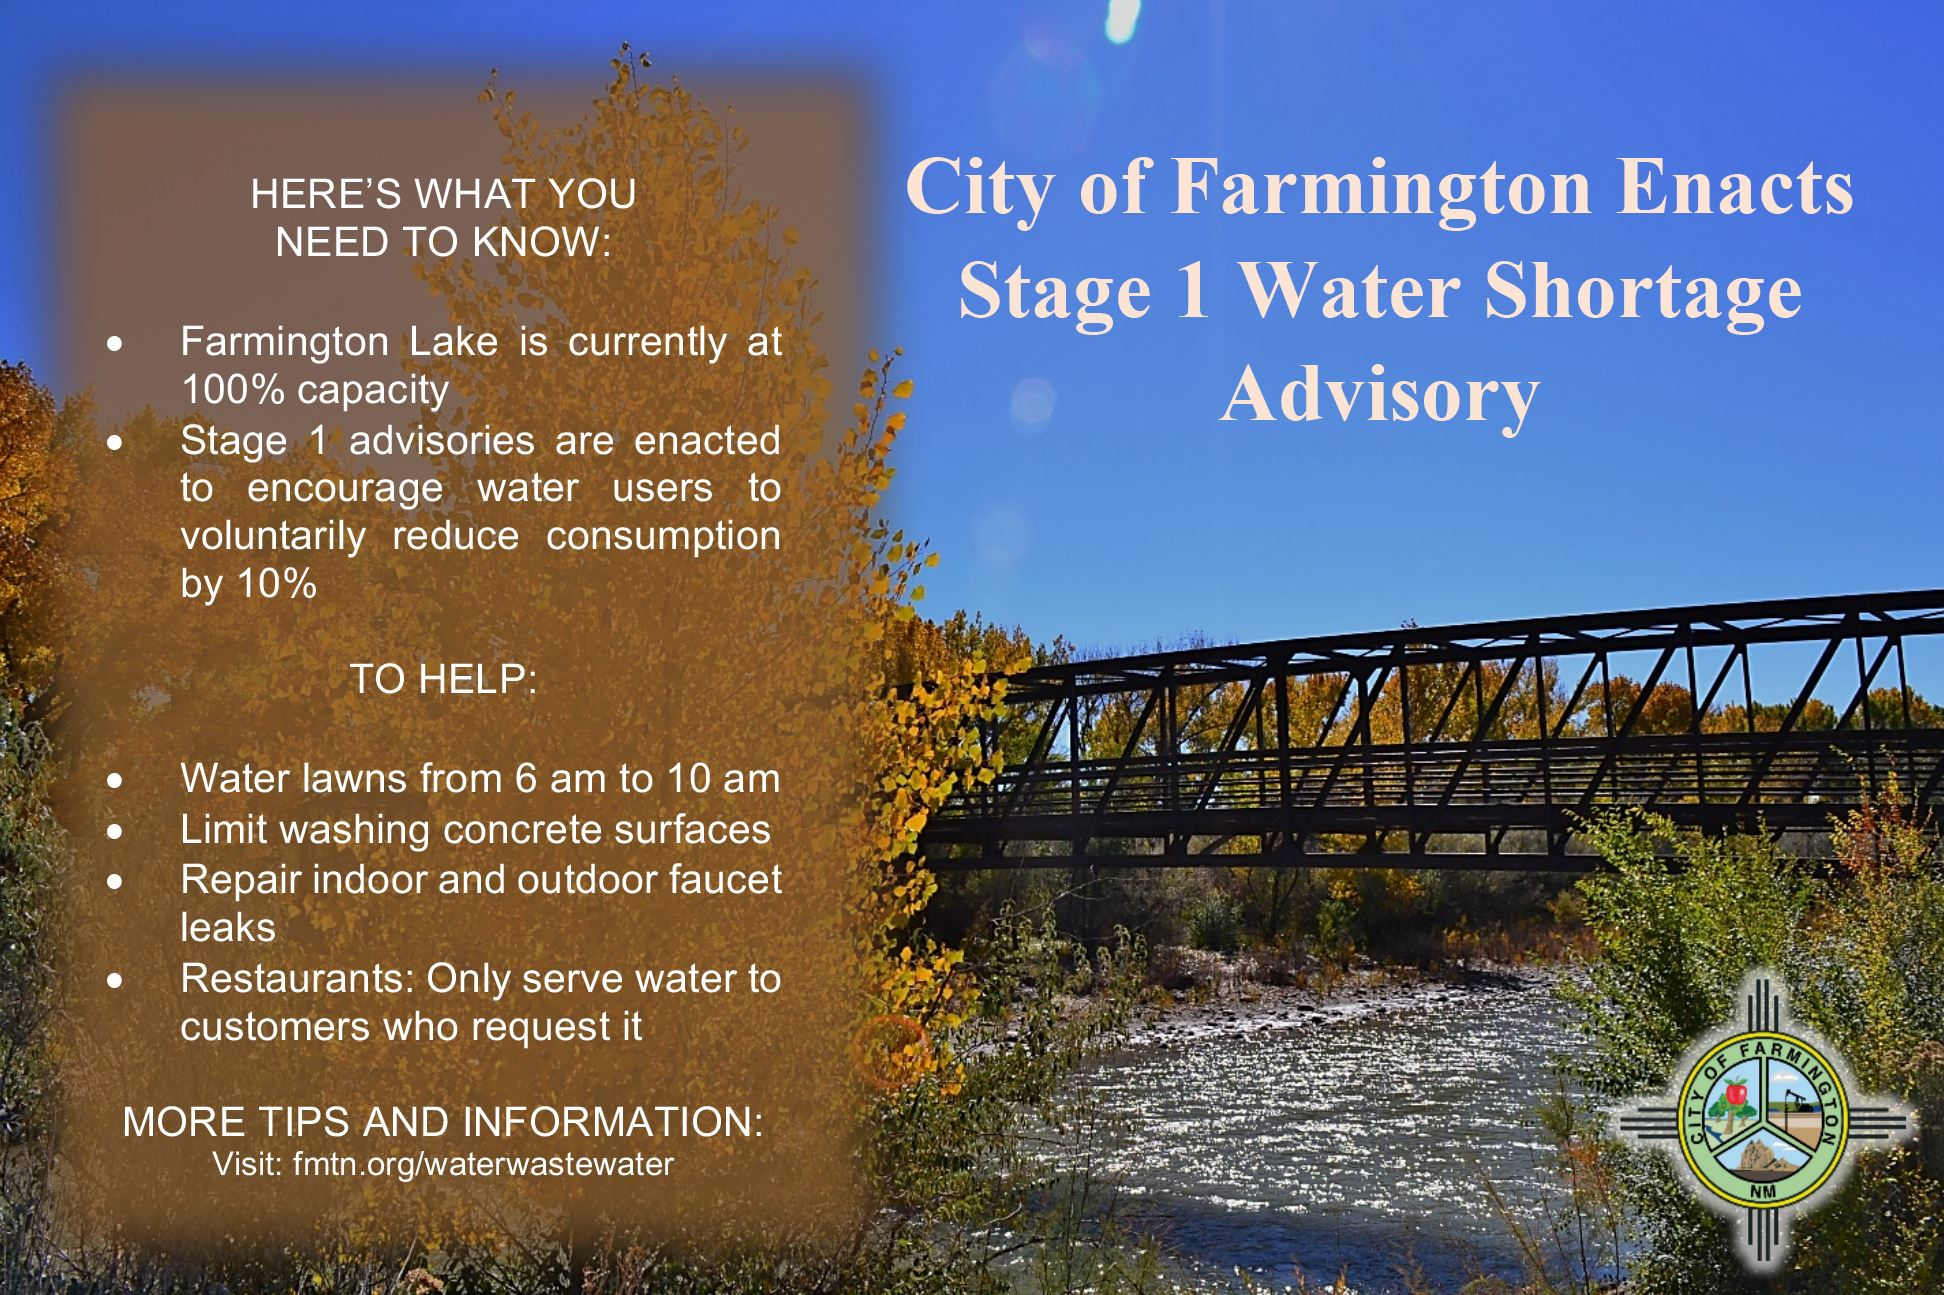 Stage 1 Water Advisory